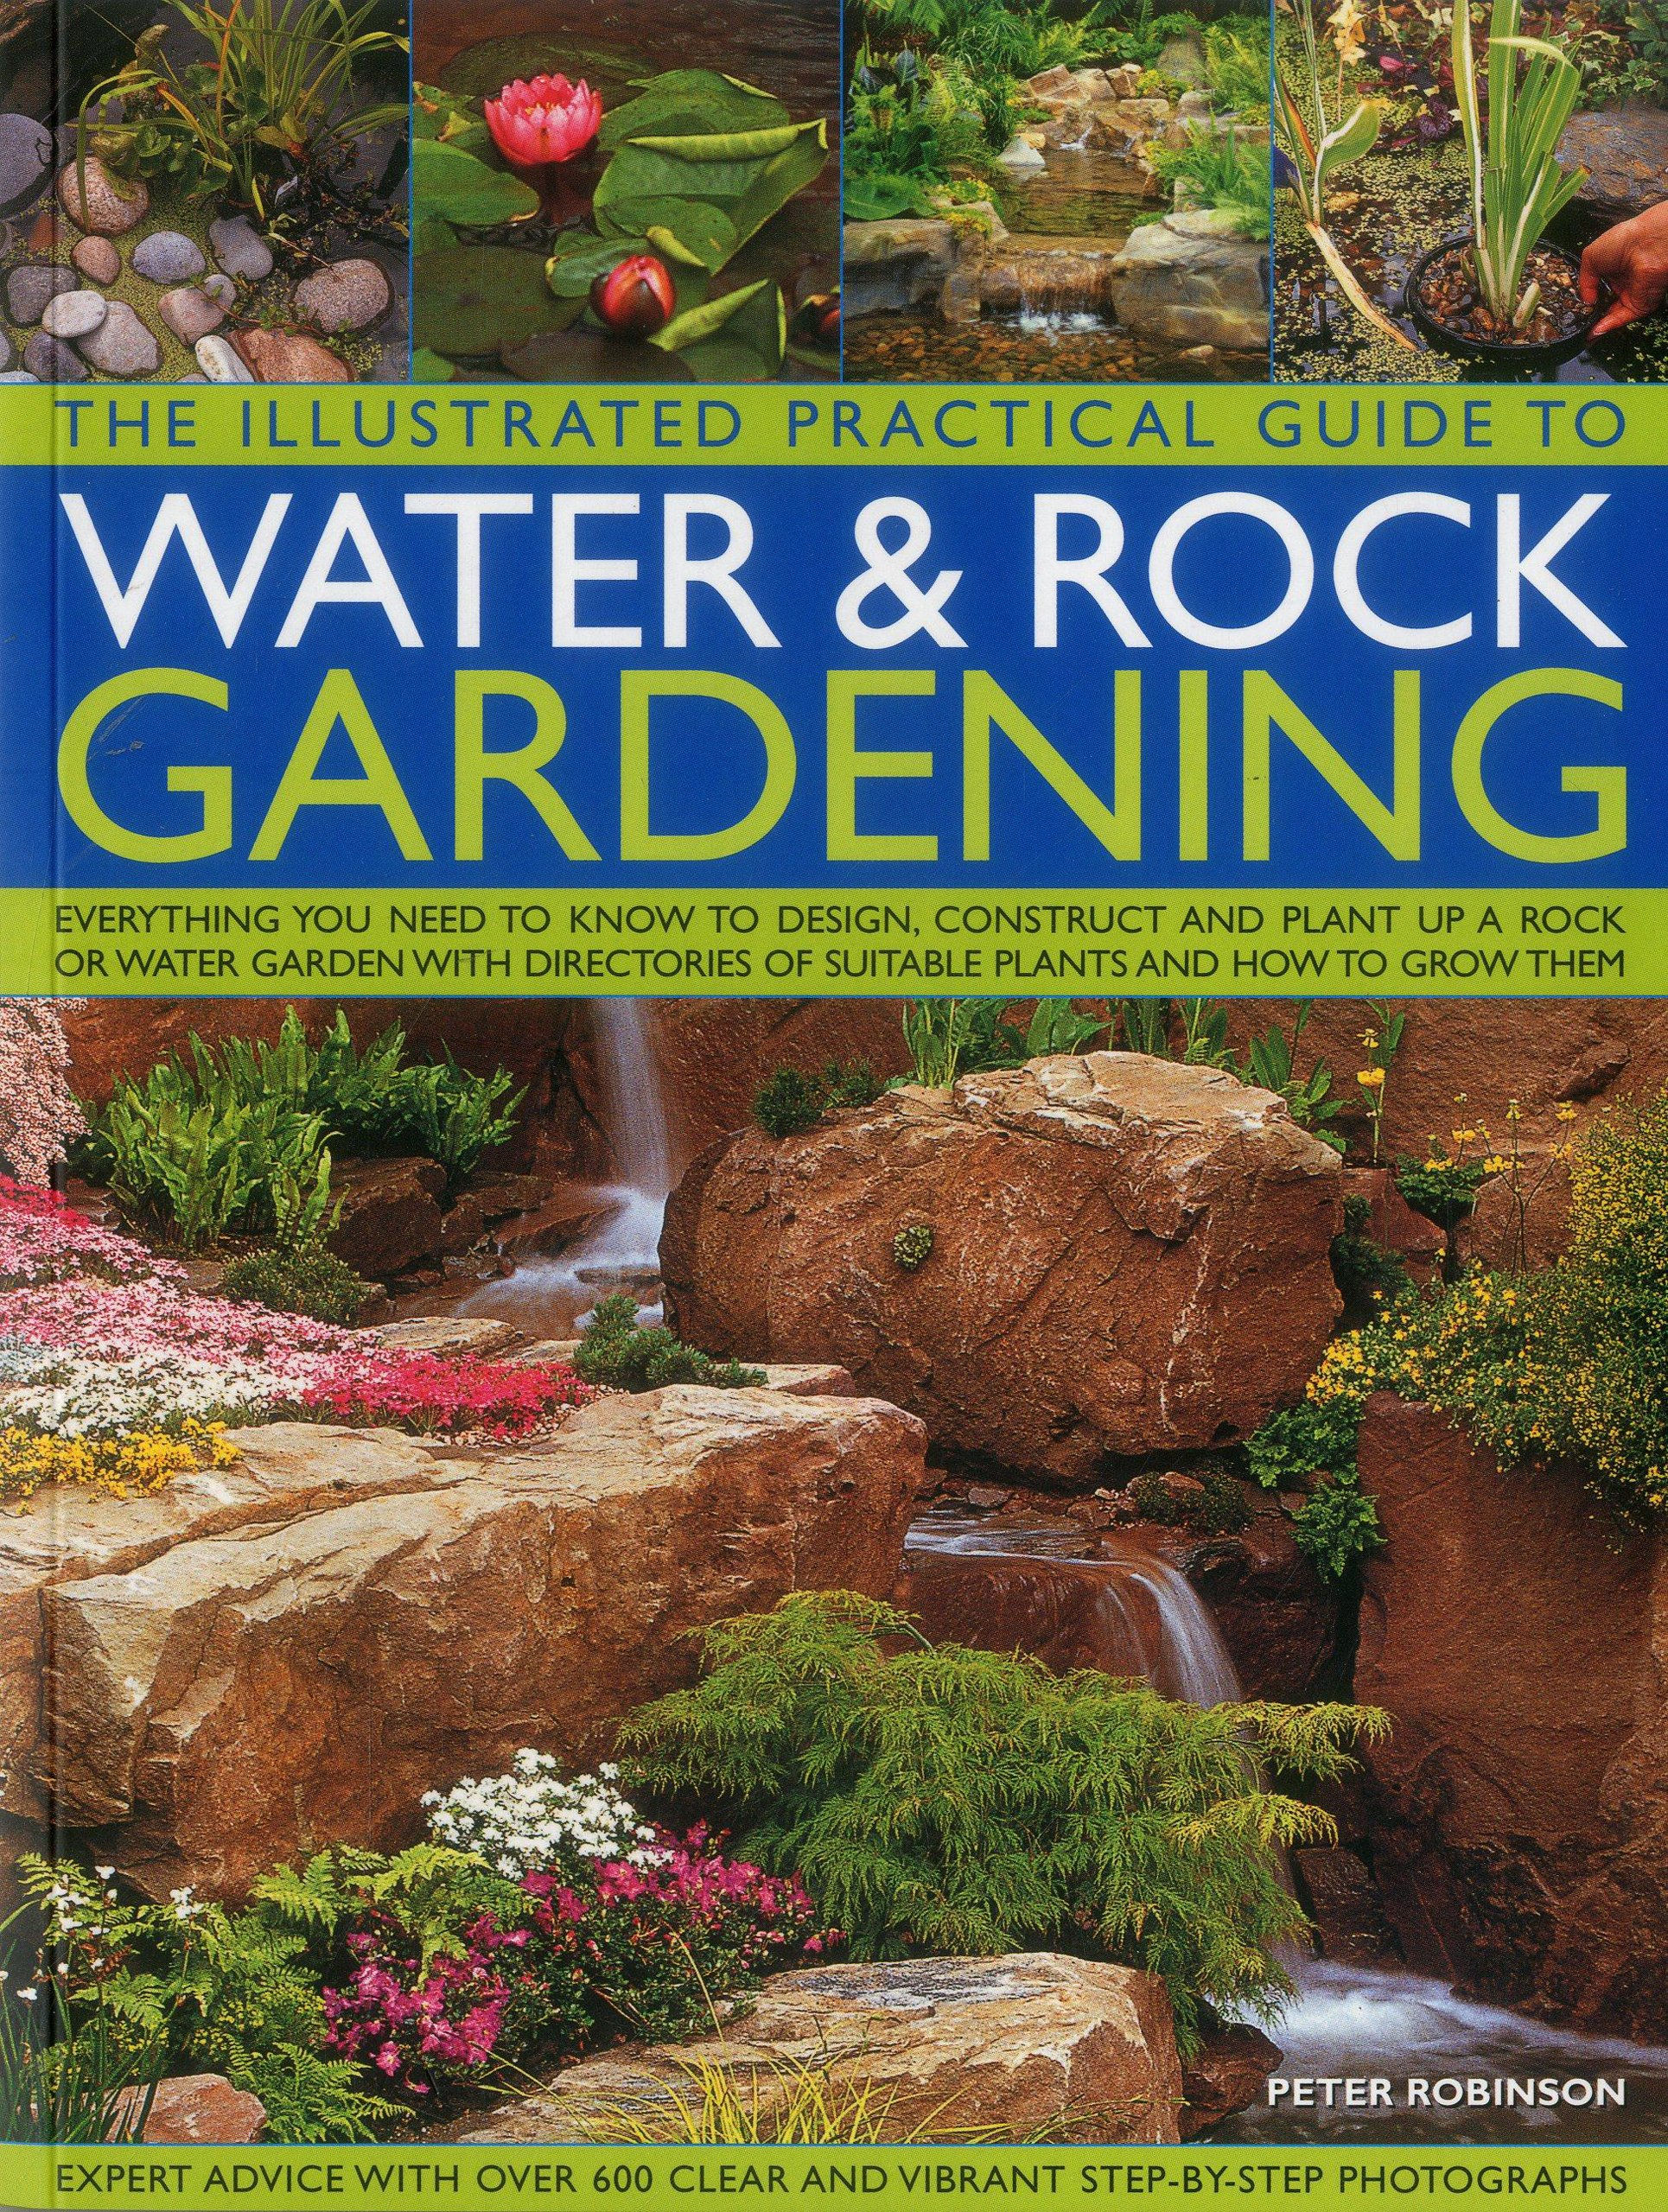 The Illustrated Practical Guide To Water U0026 Rock Gardening: Everything You  Need To Know To Design, Construct And Plant Up A Rock Or Water Garden With  ...